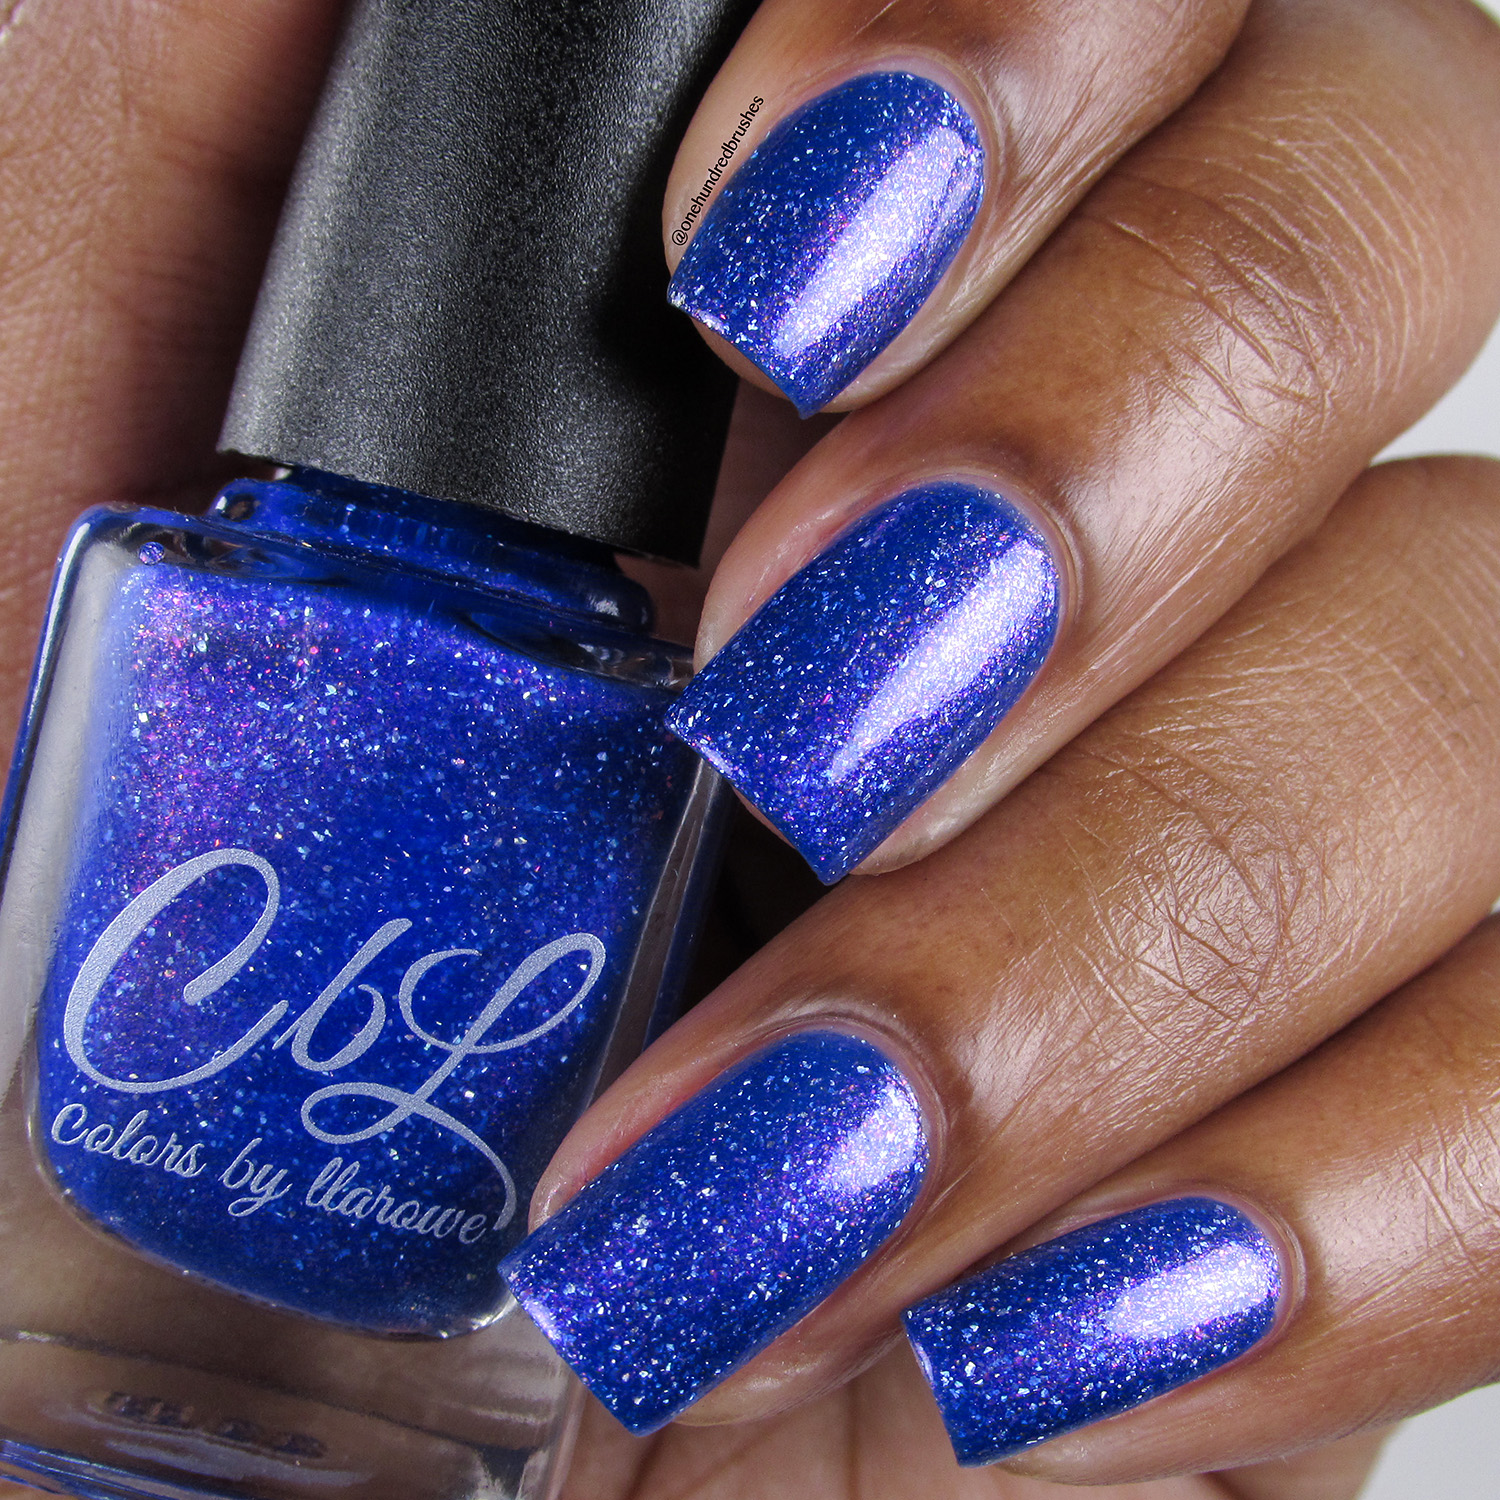 Pinch of Pixie Dust - bottle front - Colors by Llarowe - The Indie Shop Anaheim 2018